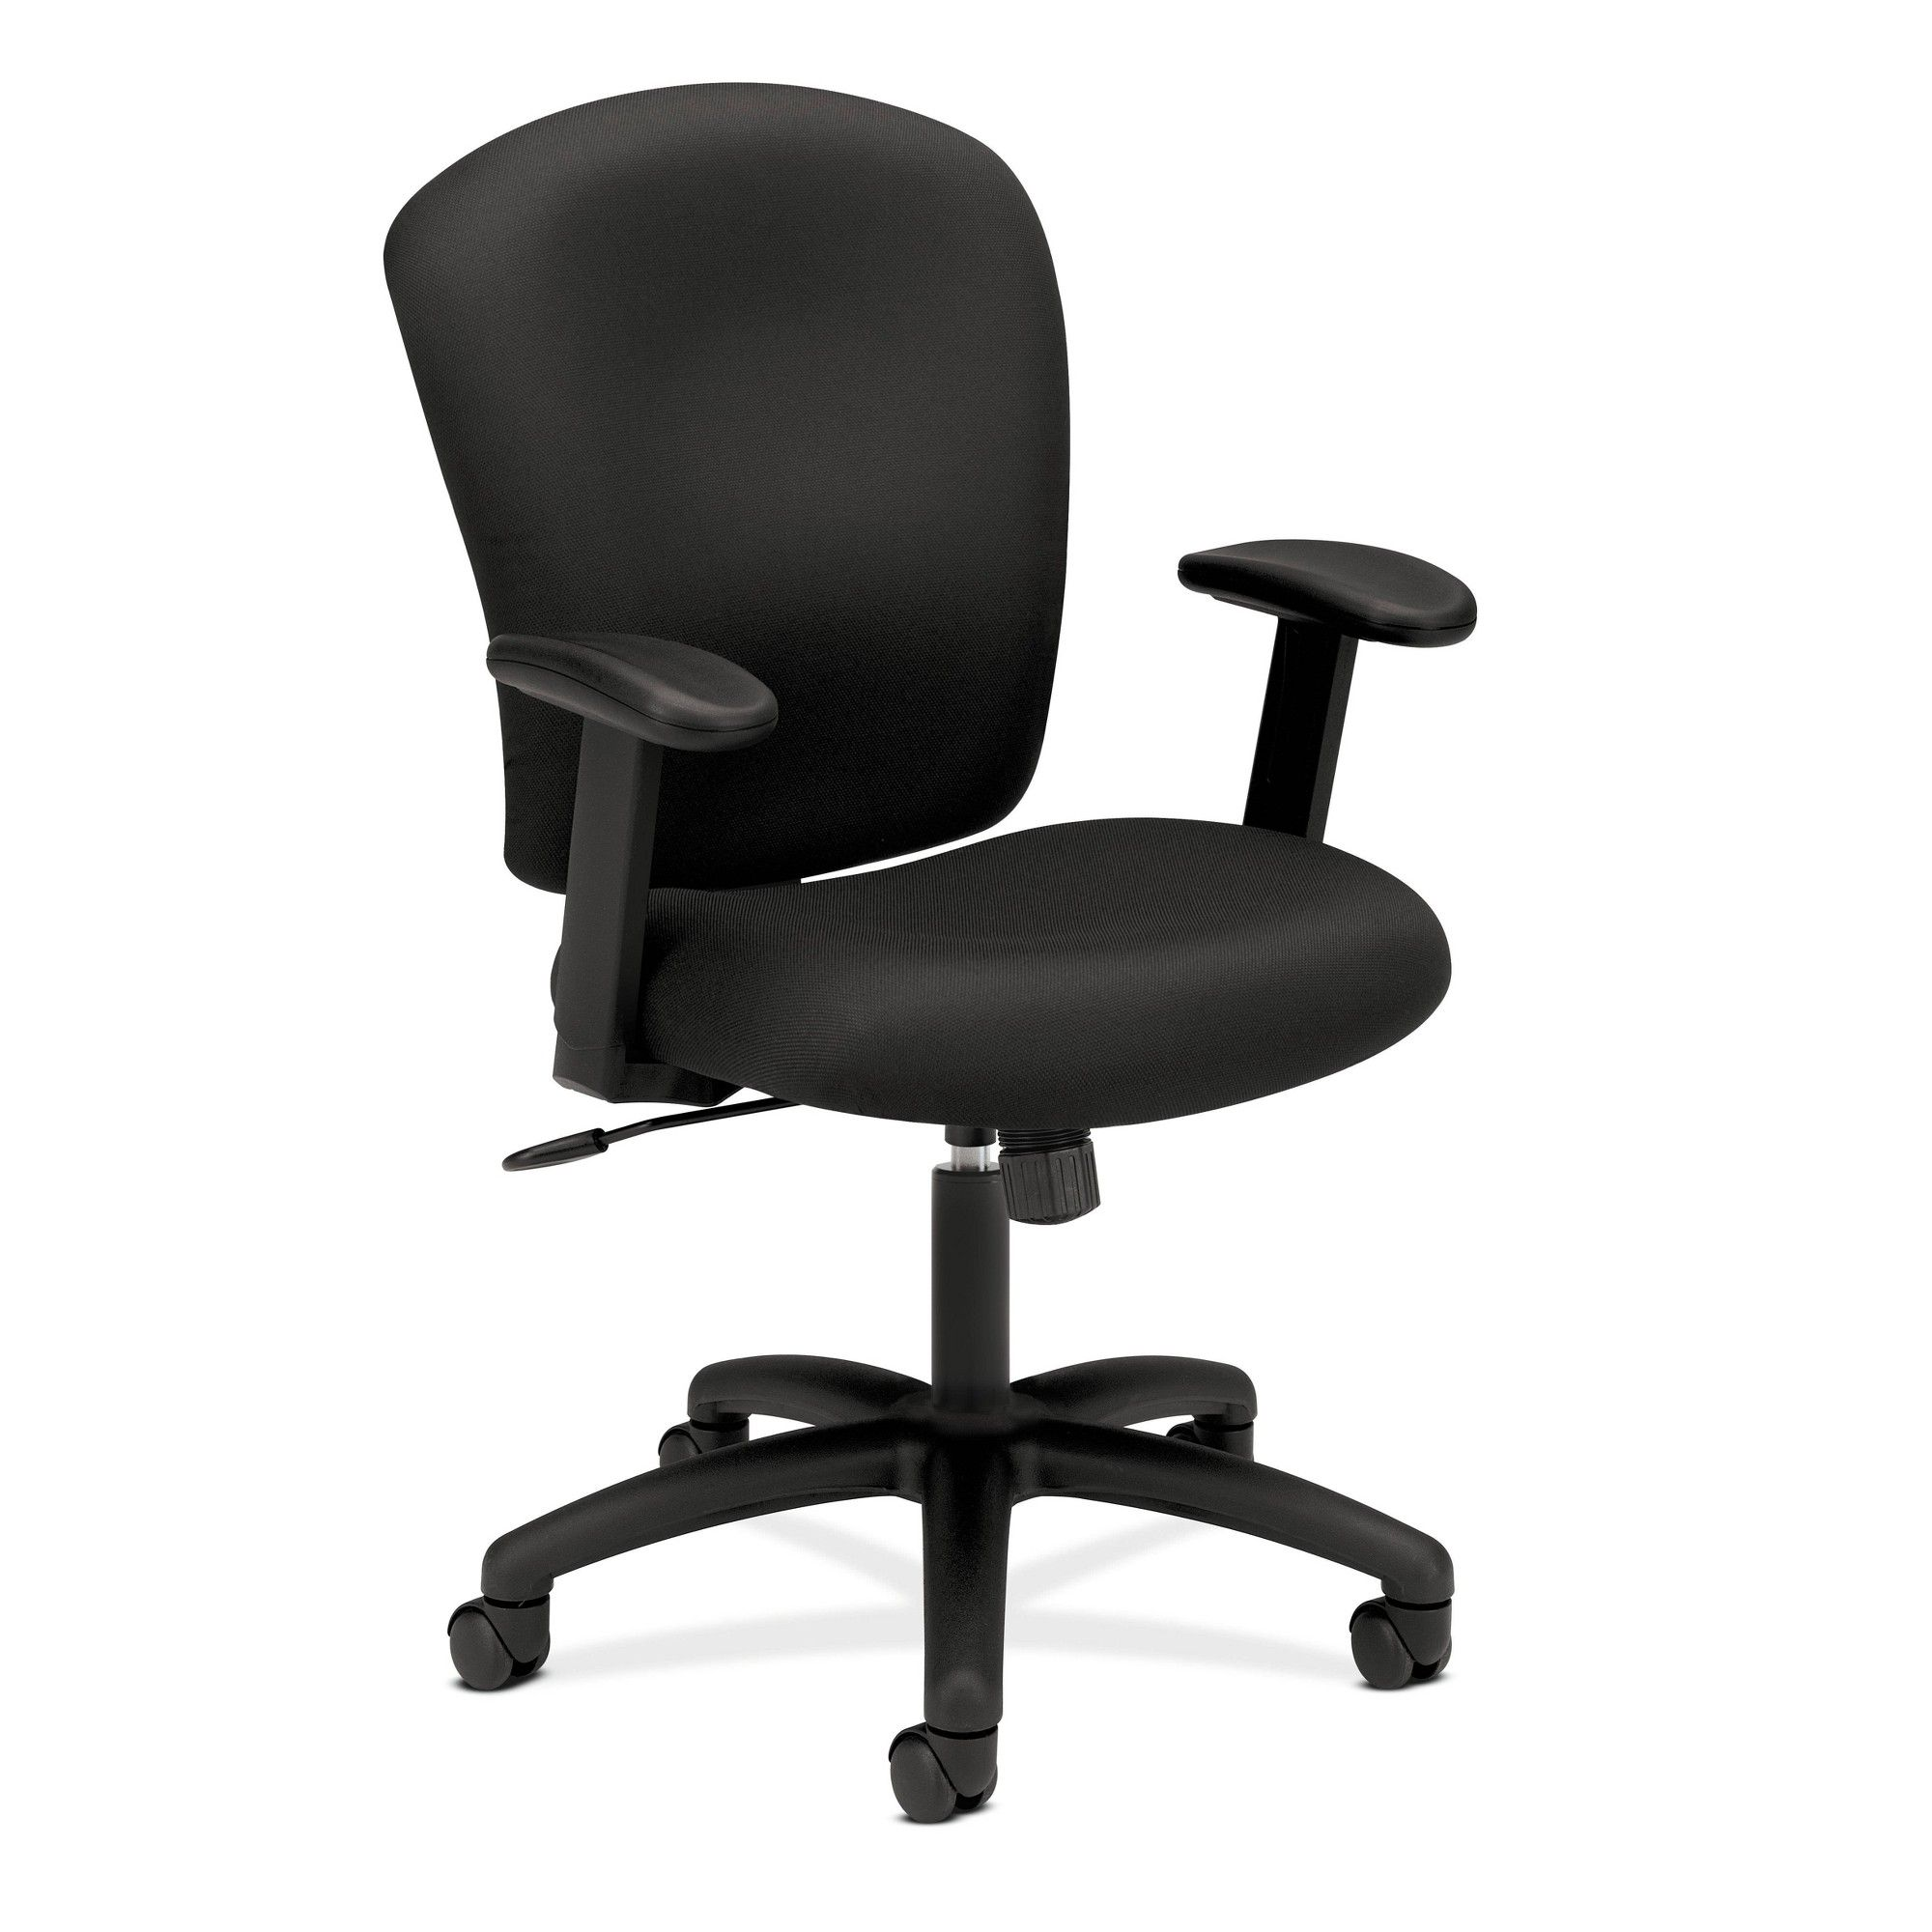 Mid Back Office Chair with Arms Black HON Black office